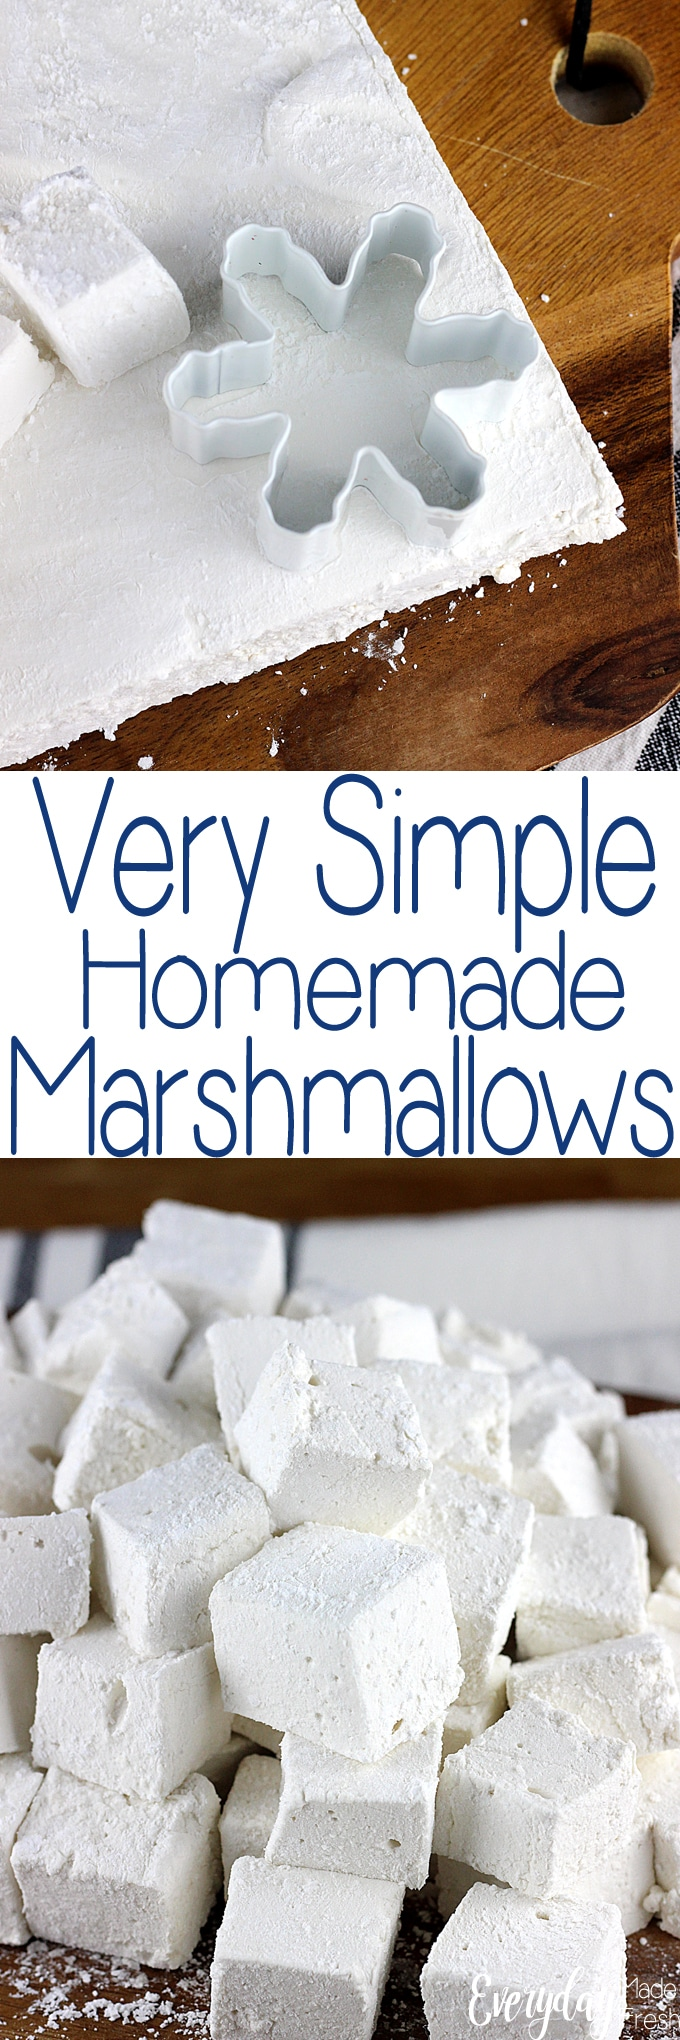 Making marshmallows at home isn't hard, and you can control what the ingredients are. These Very Simple Homemade Marshmallows are easy to make, and you can cut them into any shape you'd like! | EverydayMadeFresh.com